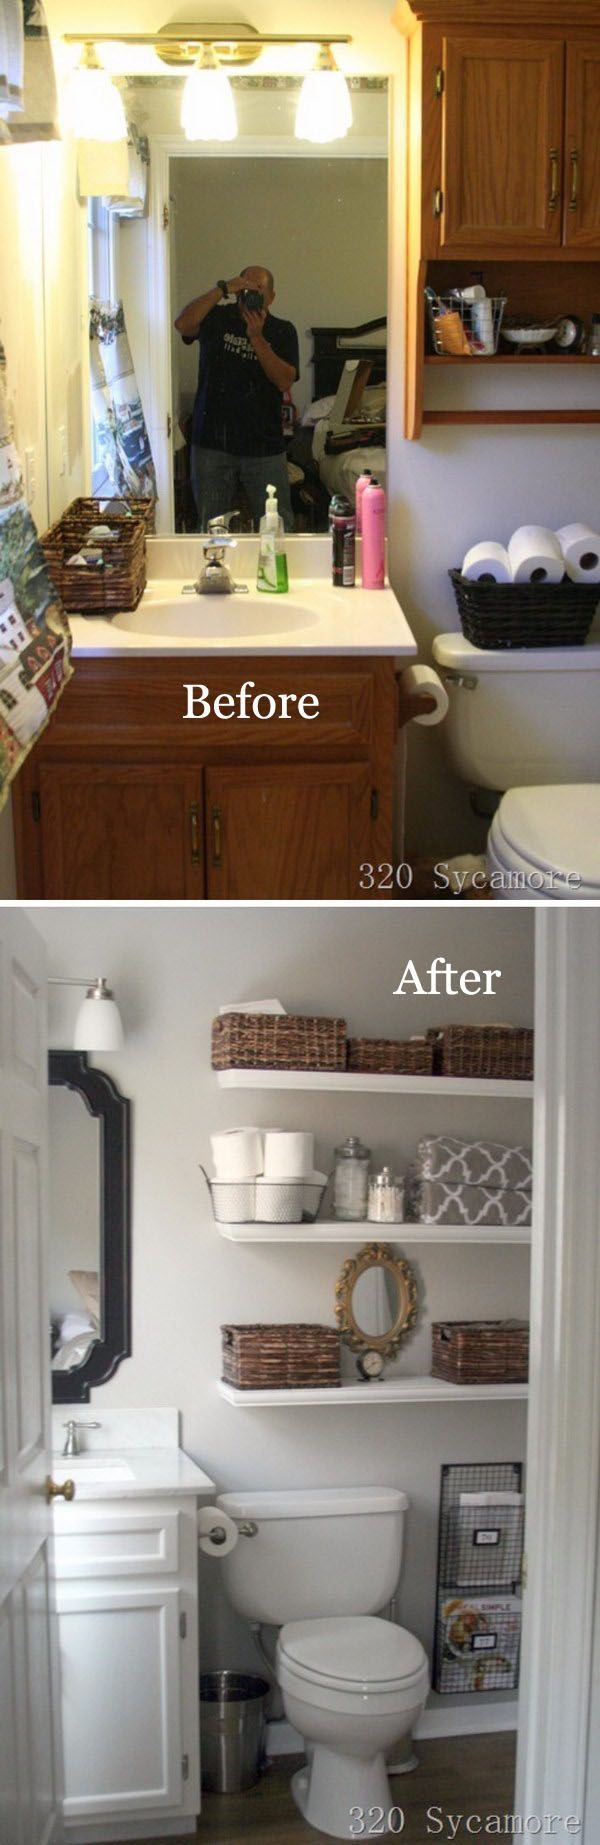 Bathroom Ideas Best 25 Small Bathrooms Ideas On Pinterest  Small Master